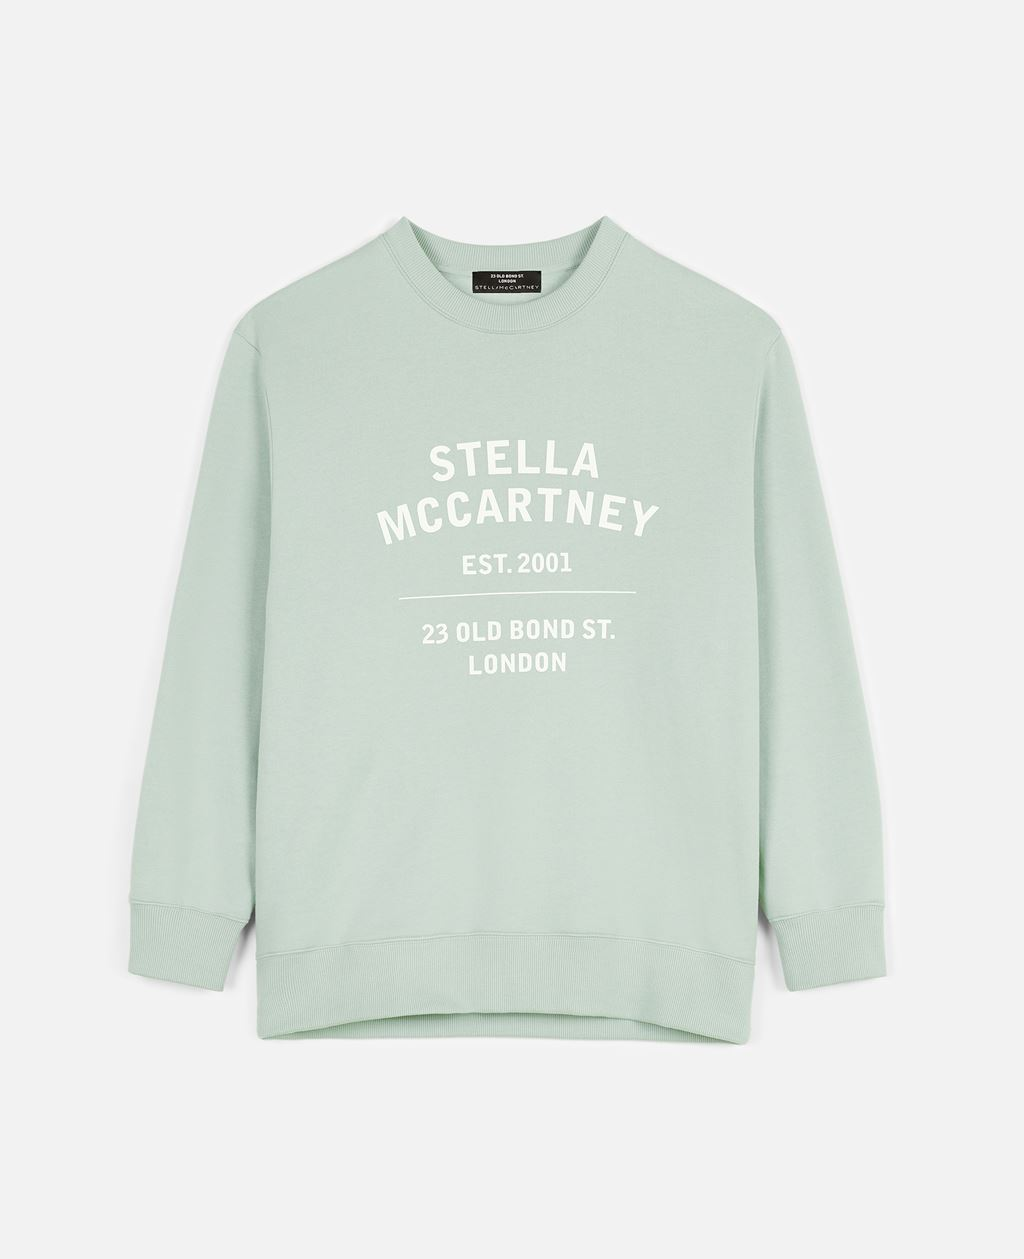 Stella Mccartney Cottons STELLA MCCARTNEY MINT 23 OBS ORGANIC COTTON SWEATSHIRT